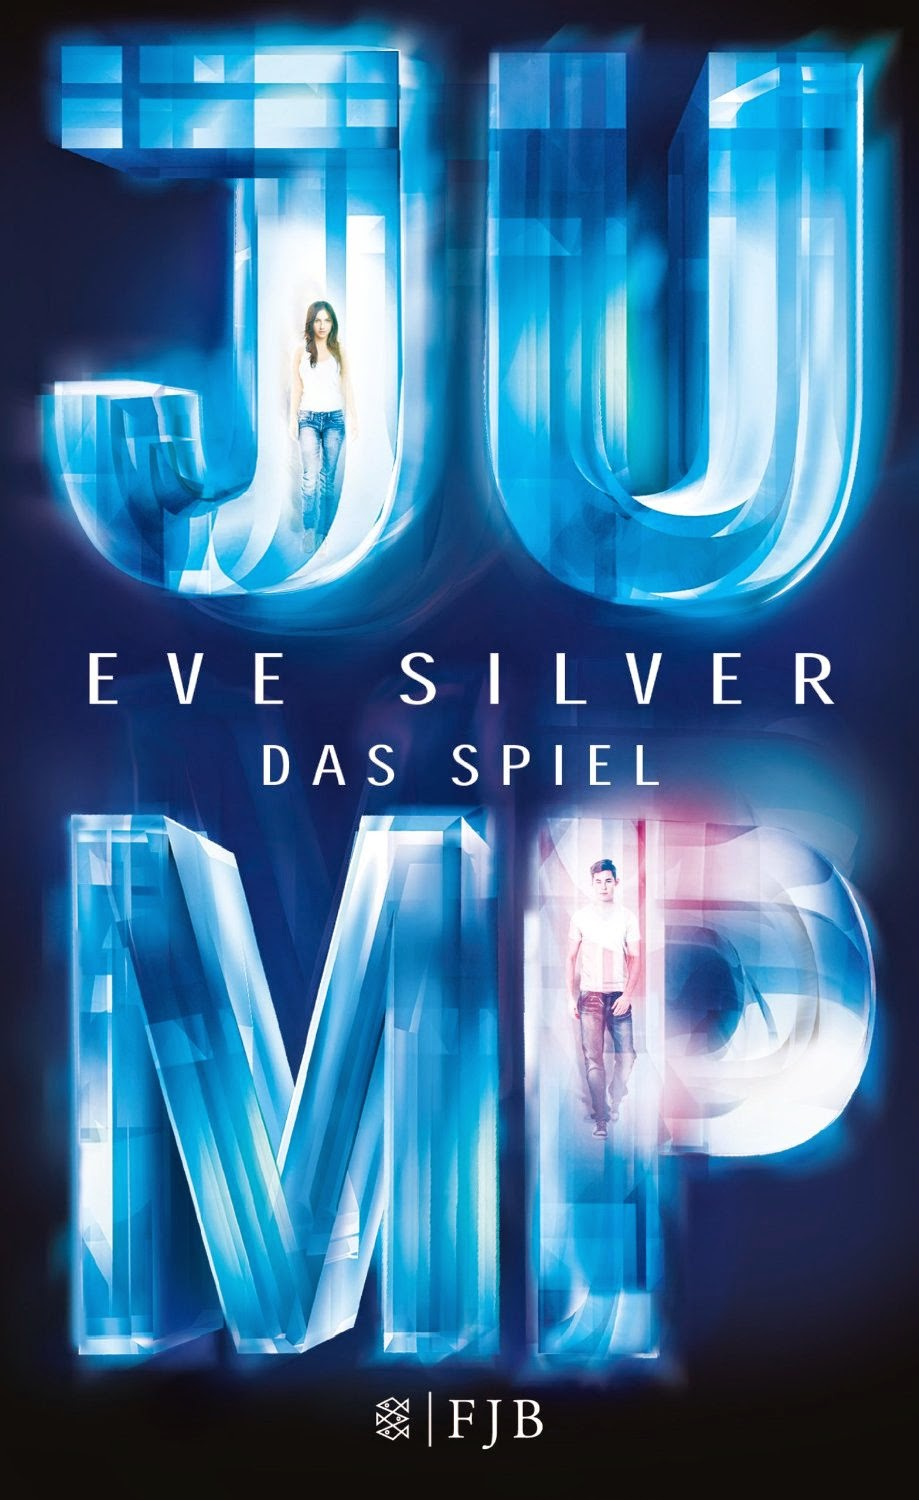 http://www.amazon.de/JUMP-Das-Spiel-Eve-Silver/dp/384142158X/ref=tmm_other_meta_binding_title_0?ie=UTF8&qid=1406137442&sr=8-1